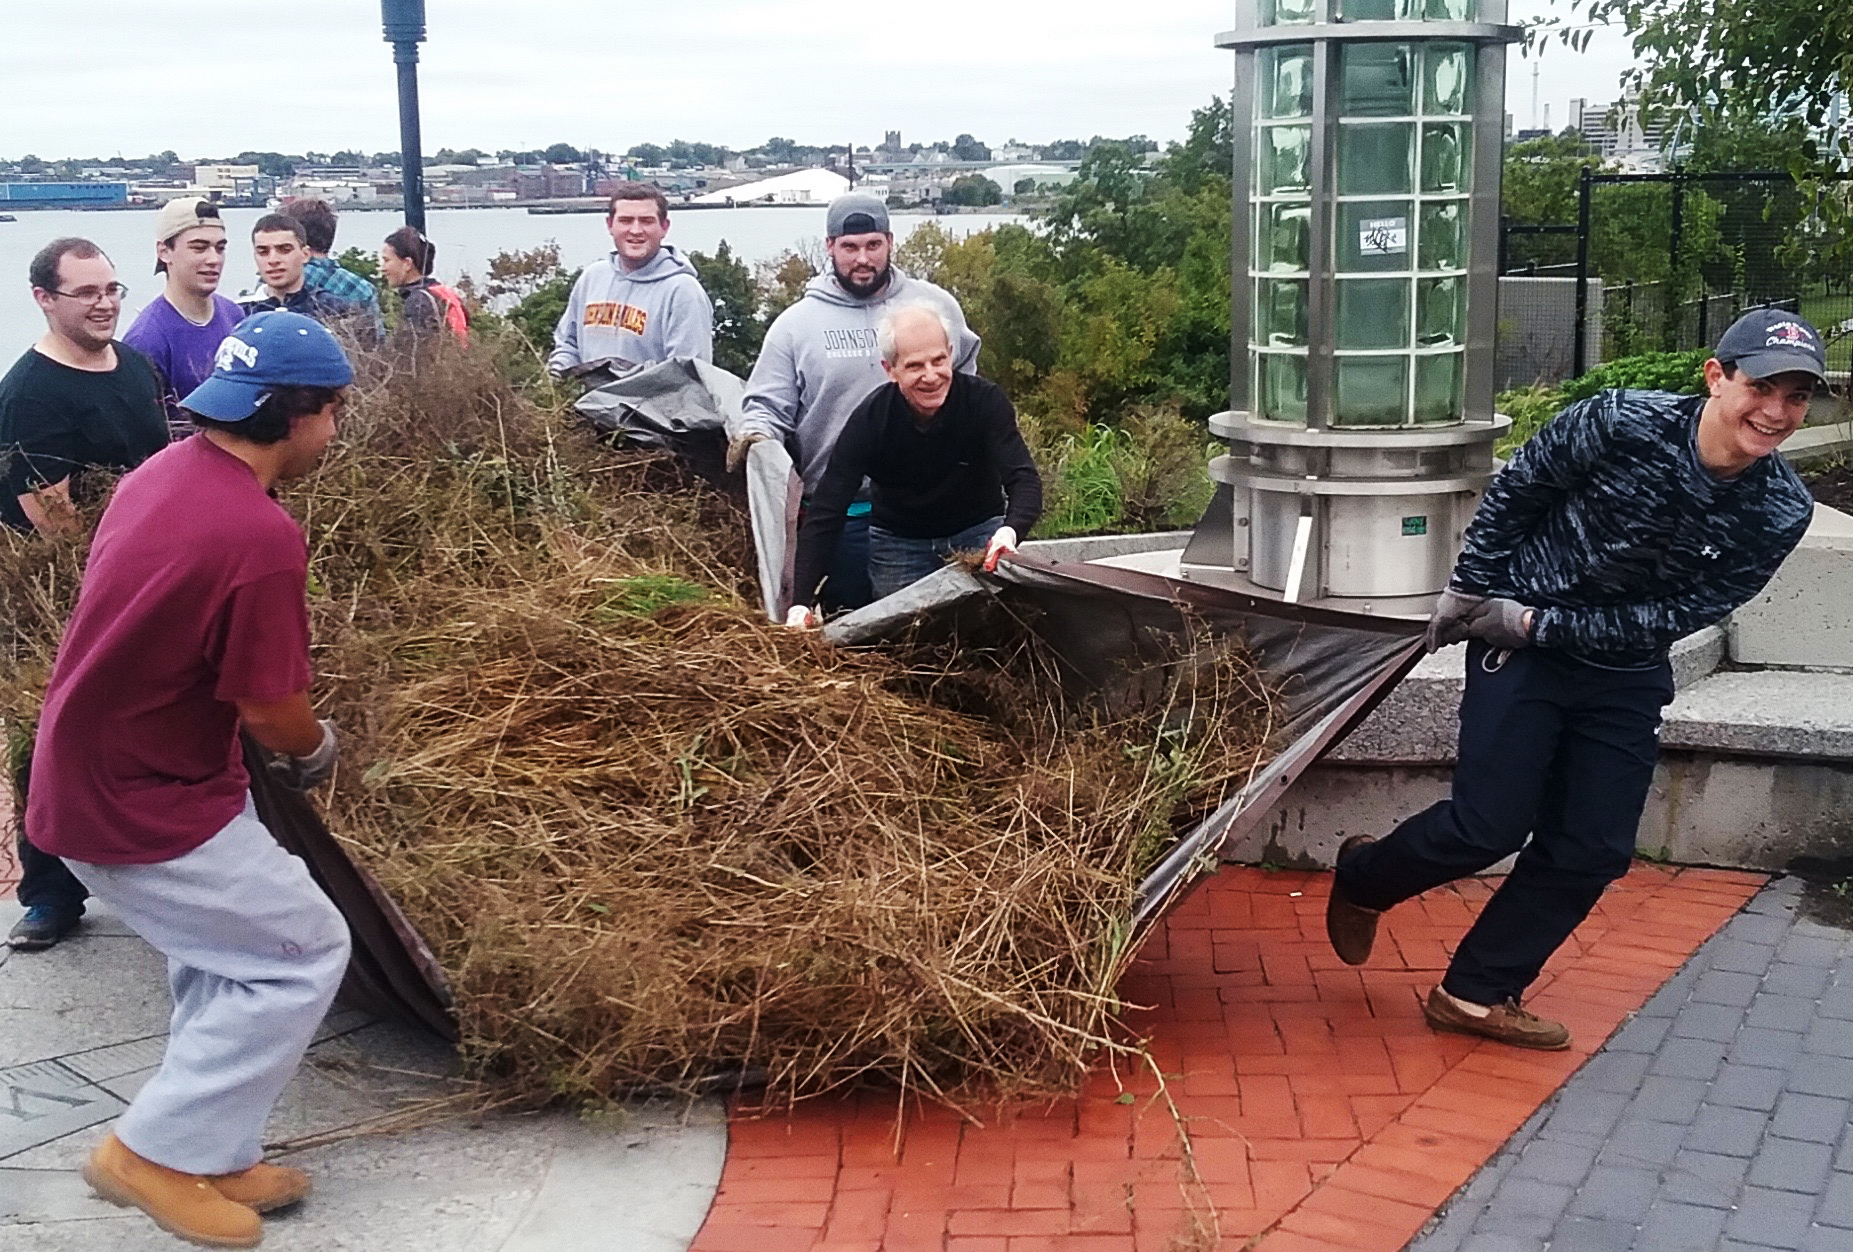 Spring Cleanup – Saturday April 27, 9-12